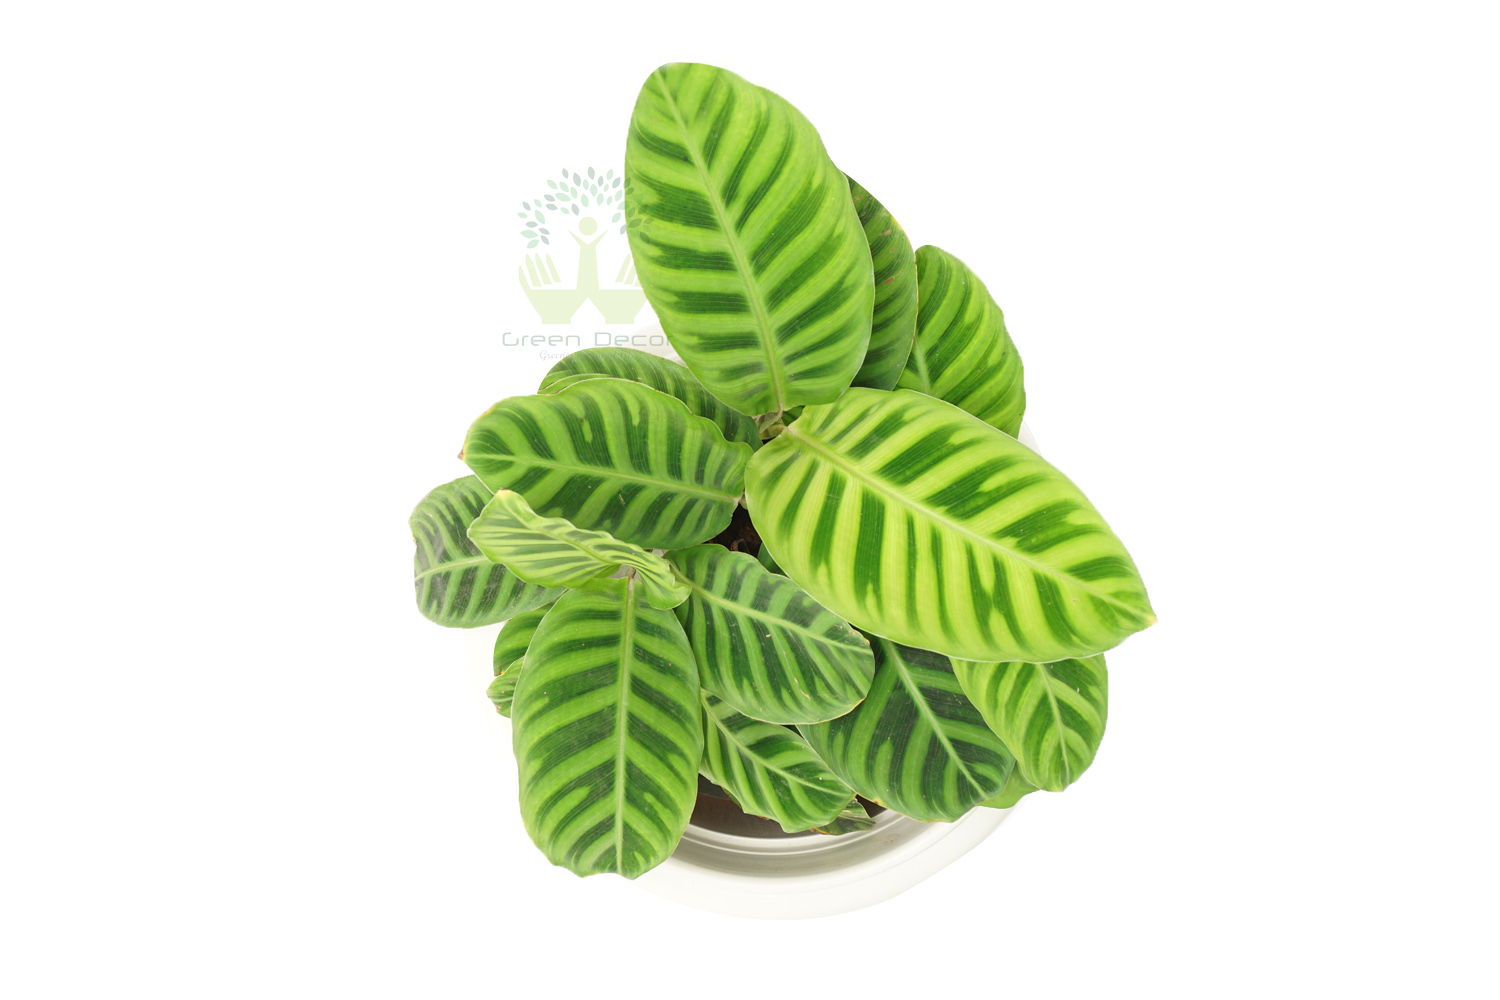 Buy Zebra Plant Top View, White Pots and Seeds in Delhi NCR by the best online nursery shop Greendecor.